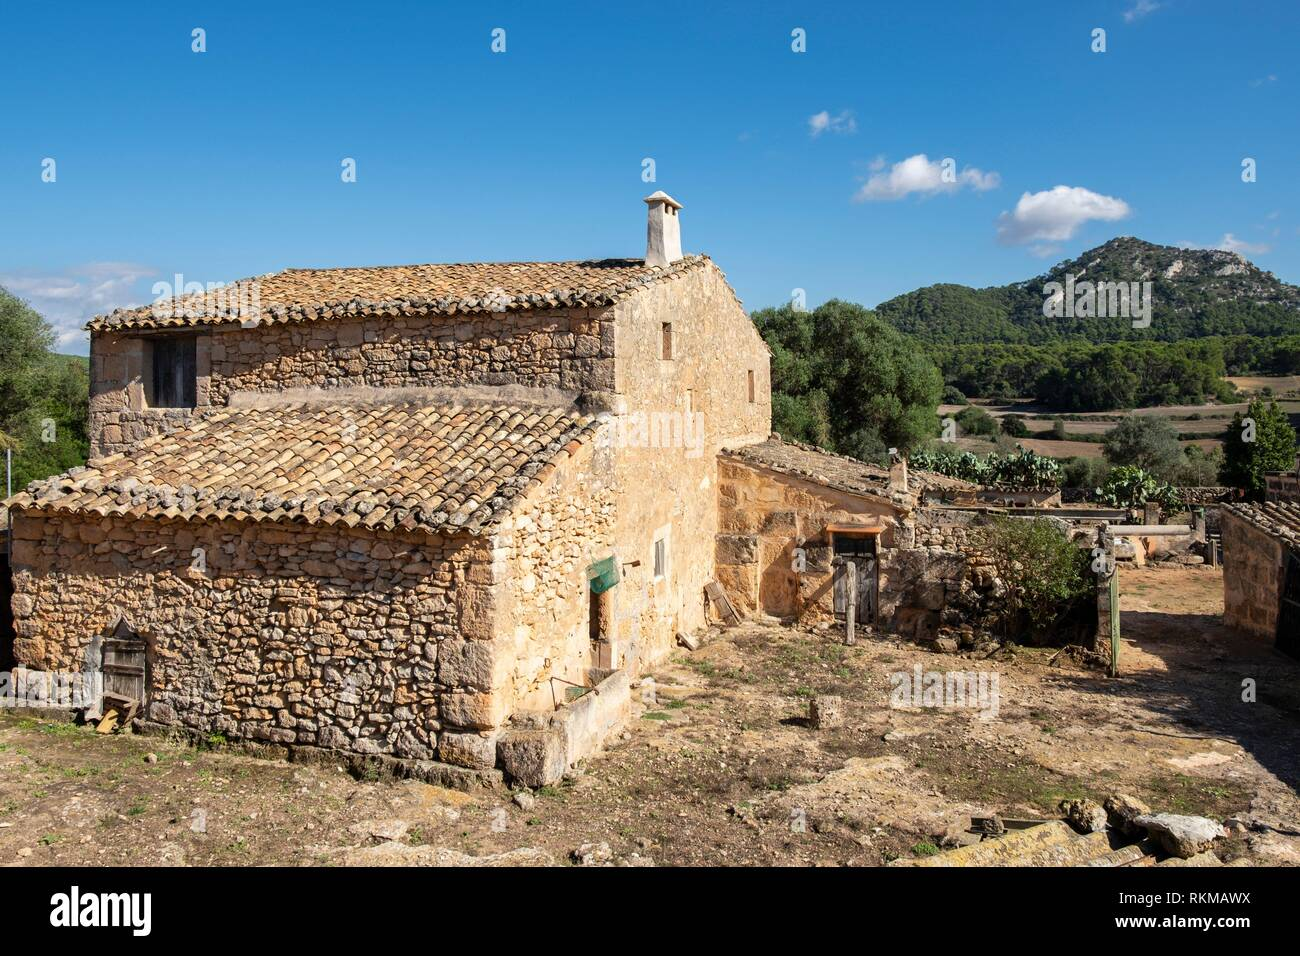 casa rural tipica y Puig de Ses Bruixes, cami de Punxuat, Algaida, Mallorca, balearic islands, Spain. Stock Photo